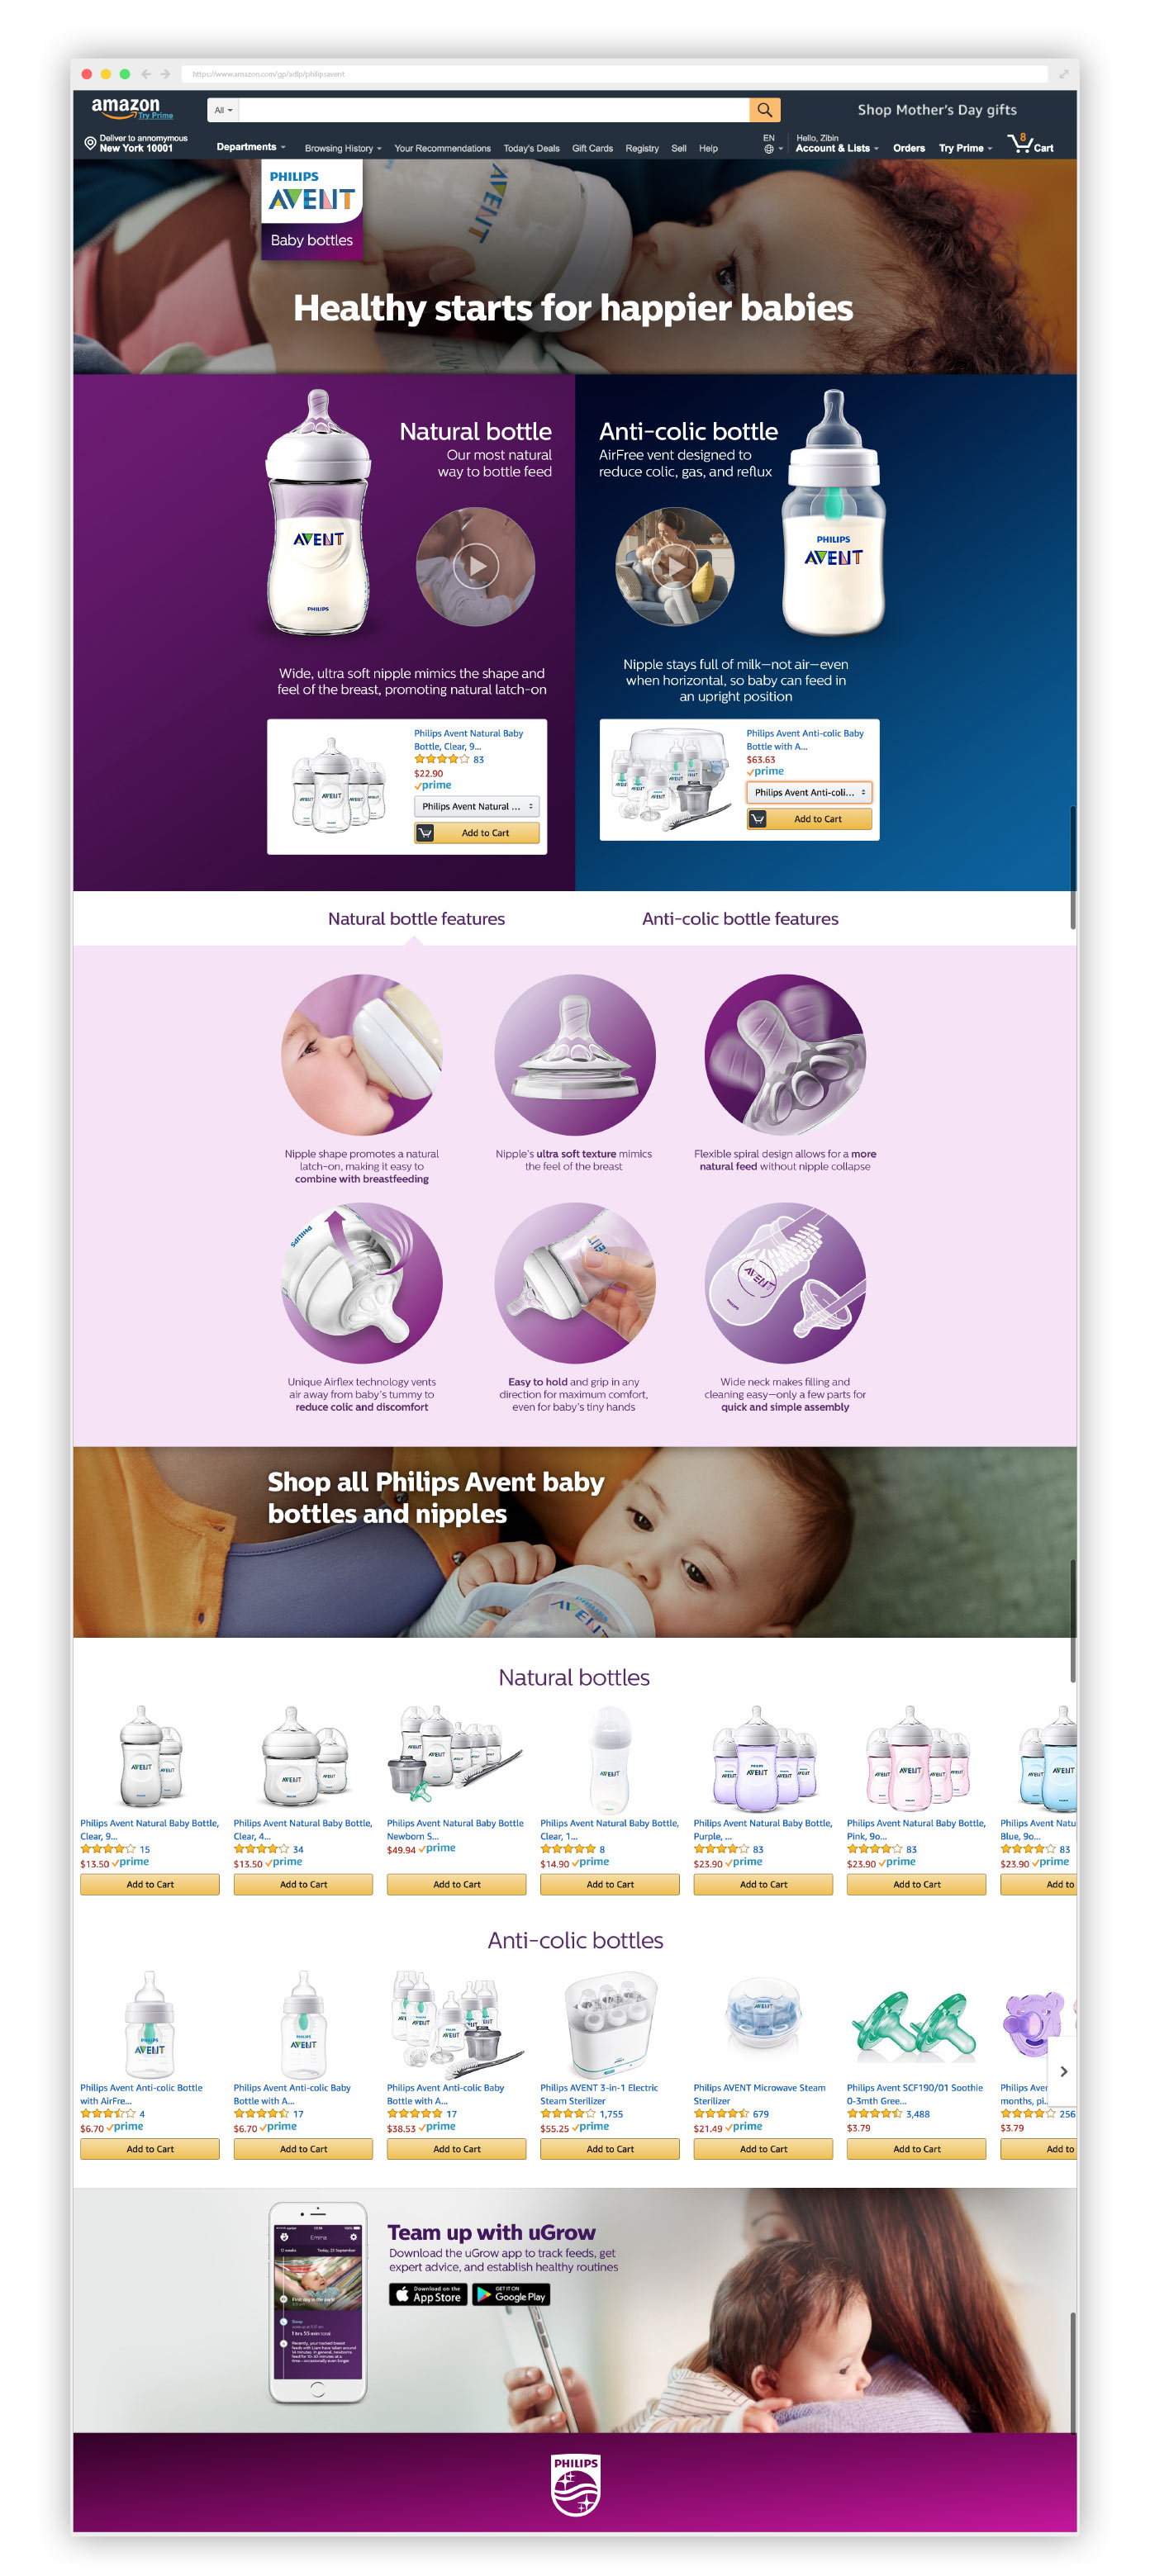 Philips Avent Custom Campaign Landing Page, Digital, 3000px x8740 px